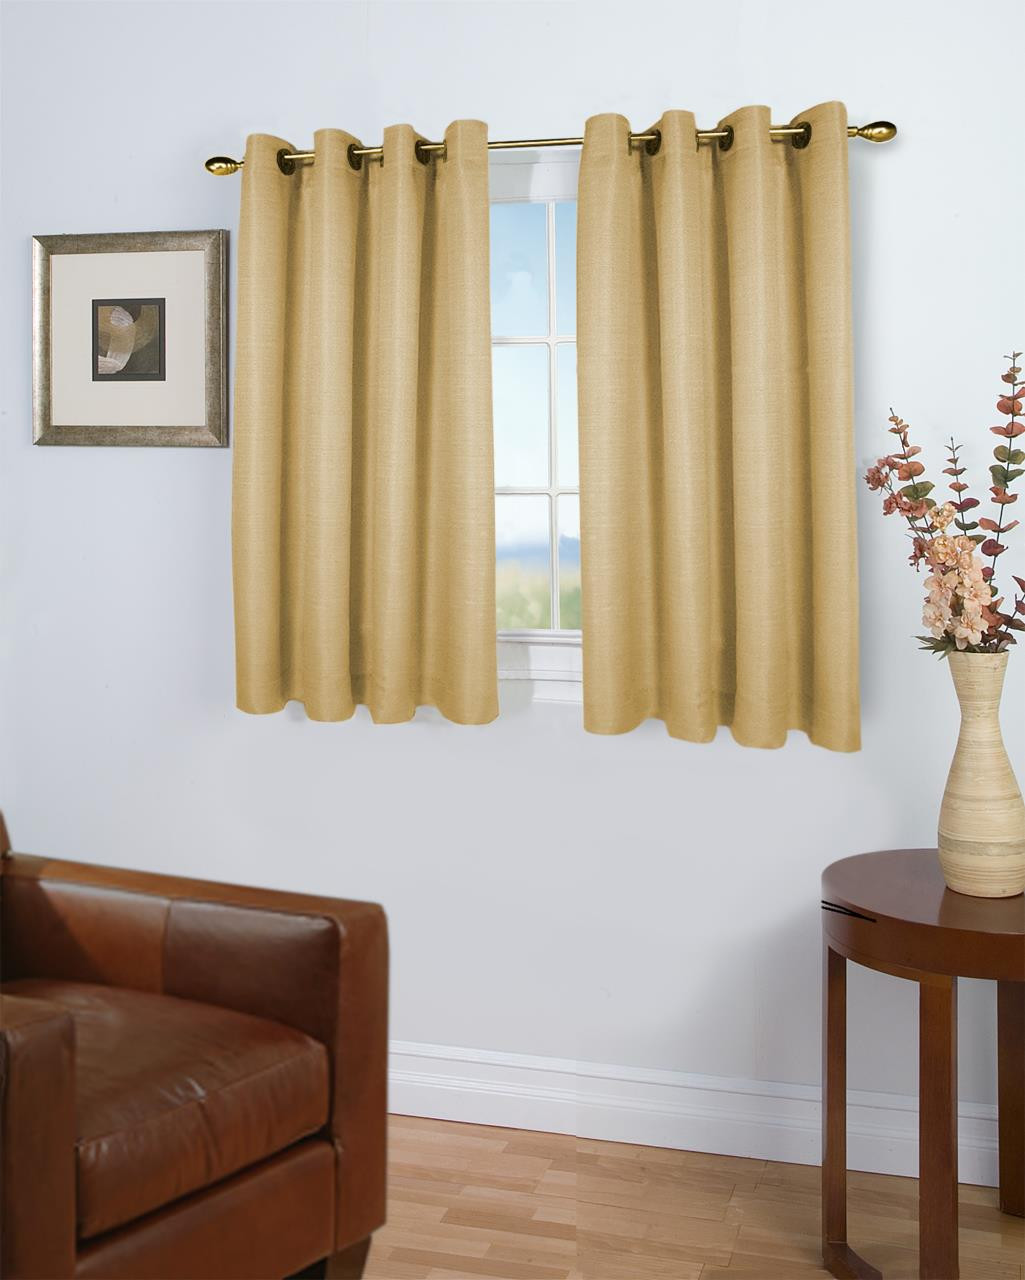 Grasscloth Insulated Solid Color Grommet Short Curtain Panel w/ Wand - 842249039379